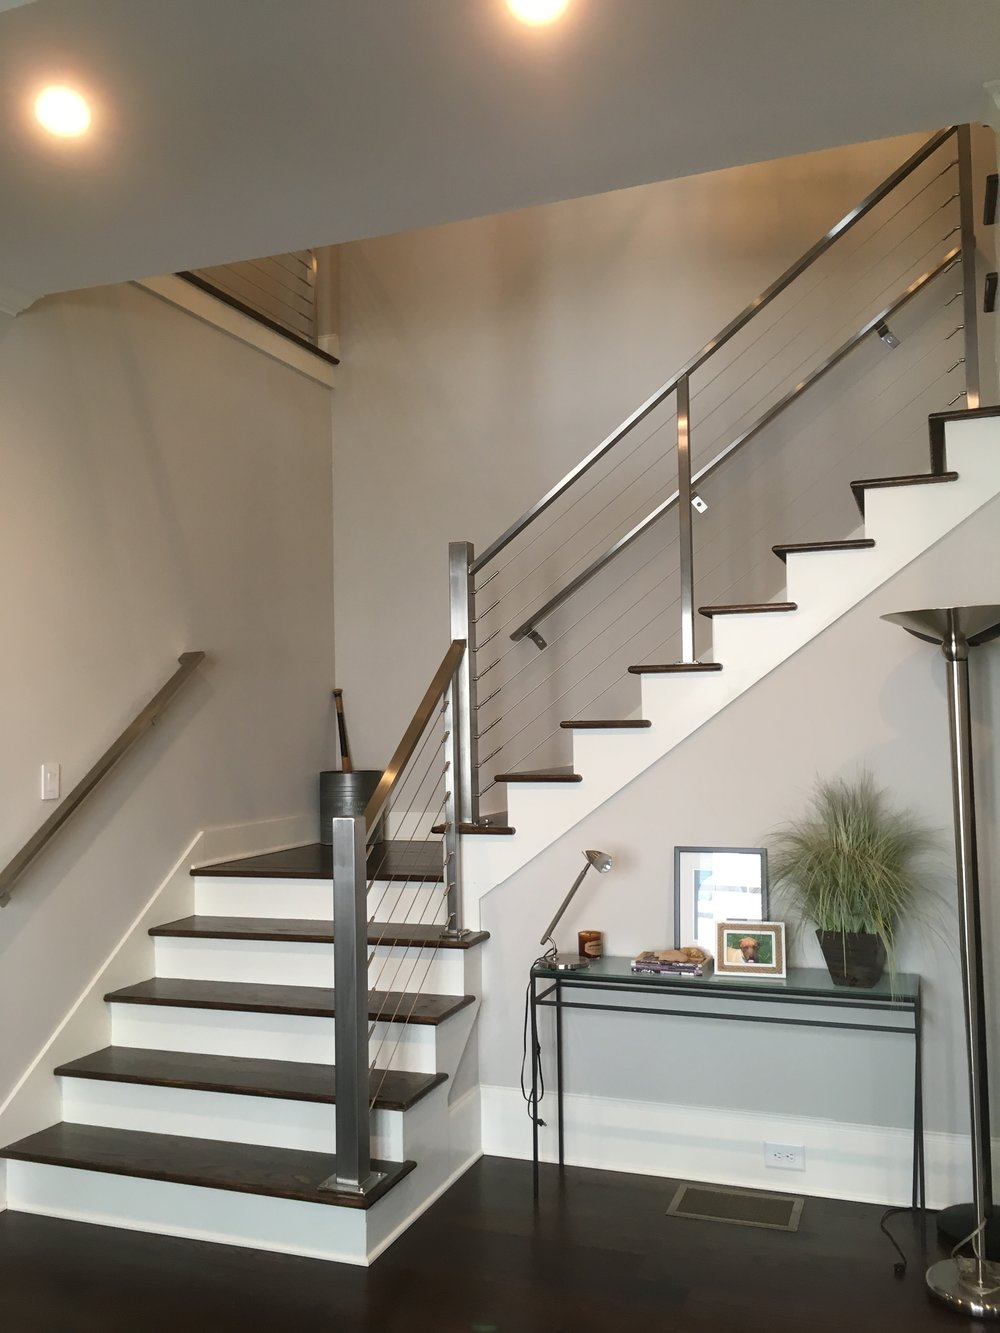 Brody Stainless Steel Cable Railing